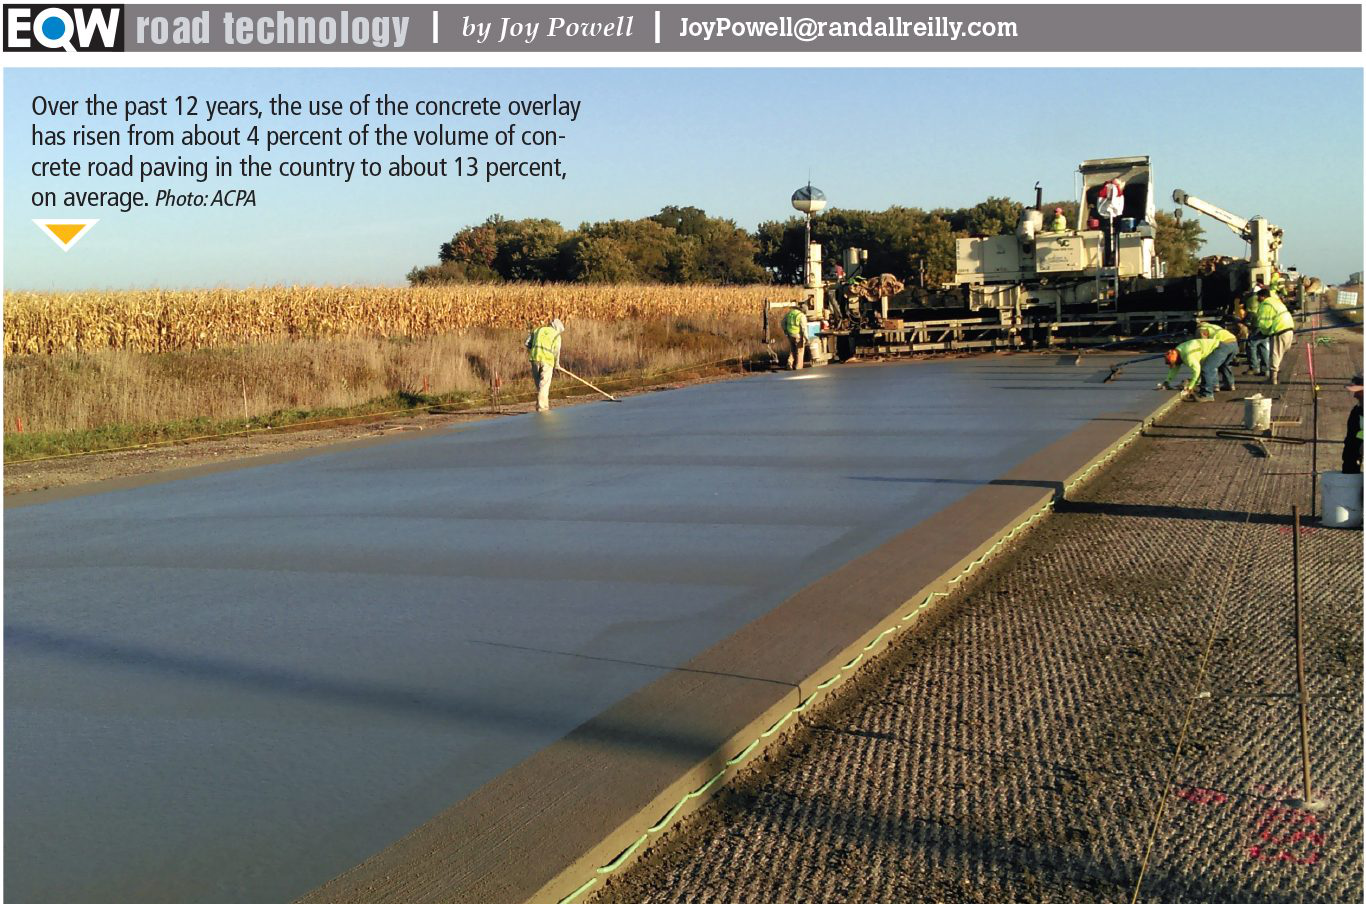 Construction crew pouring concrete overlay on road